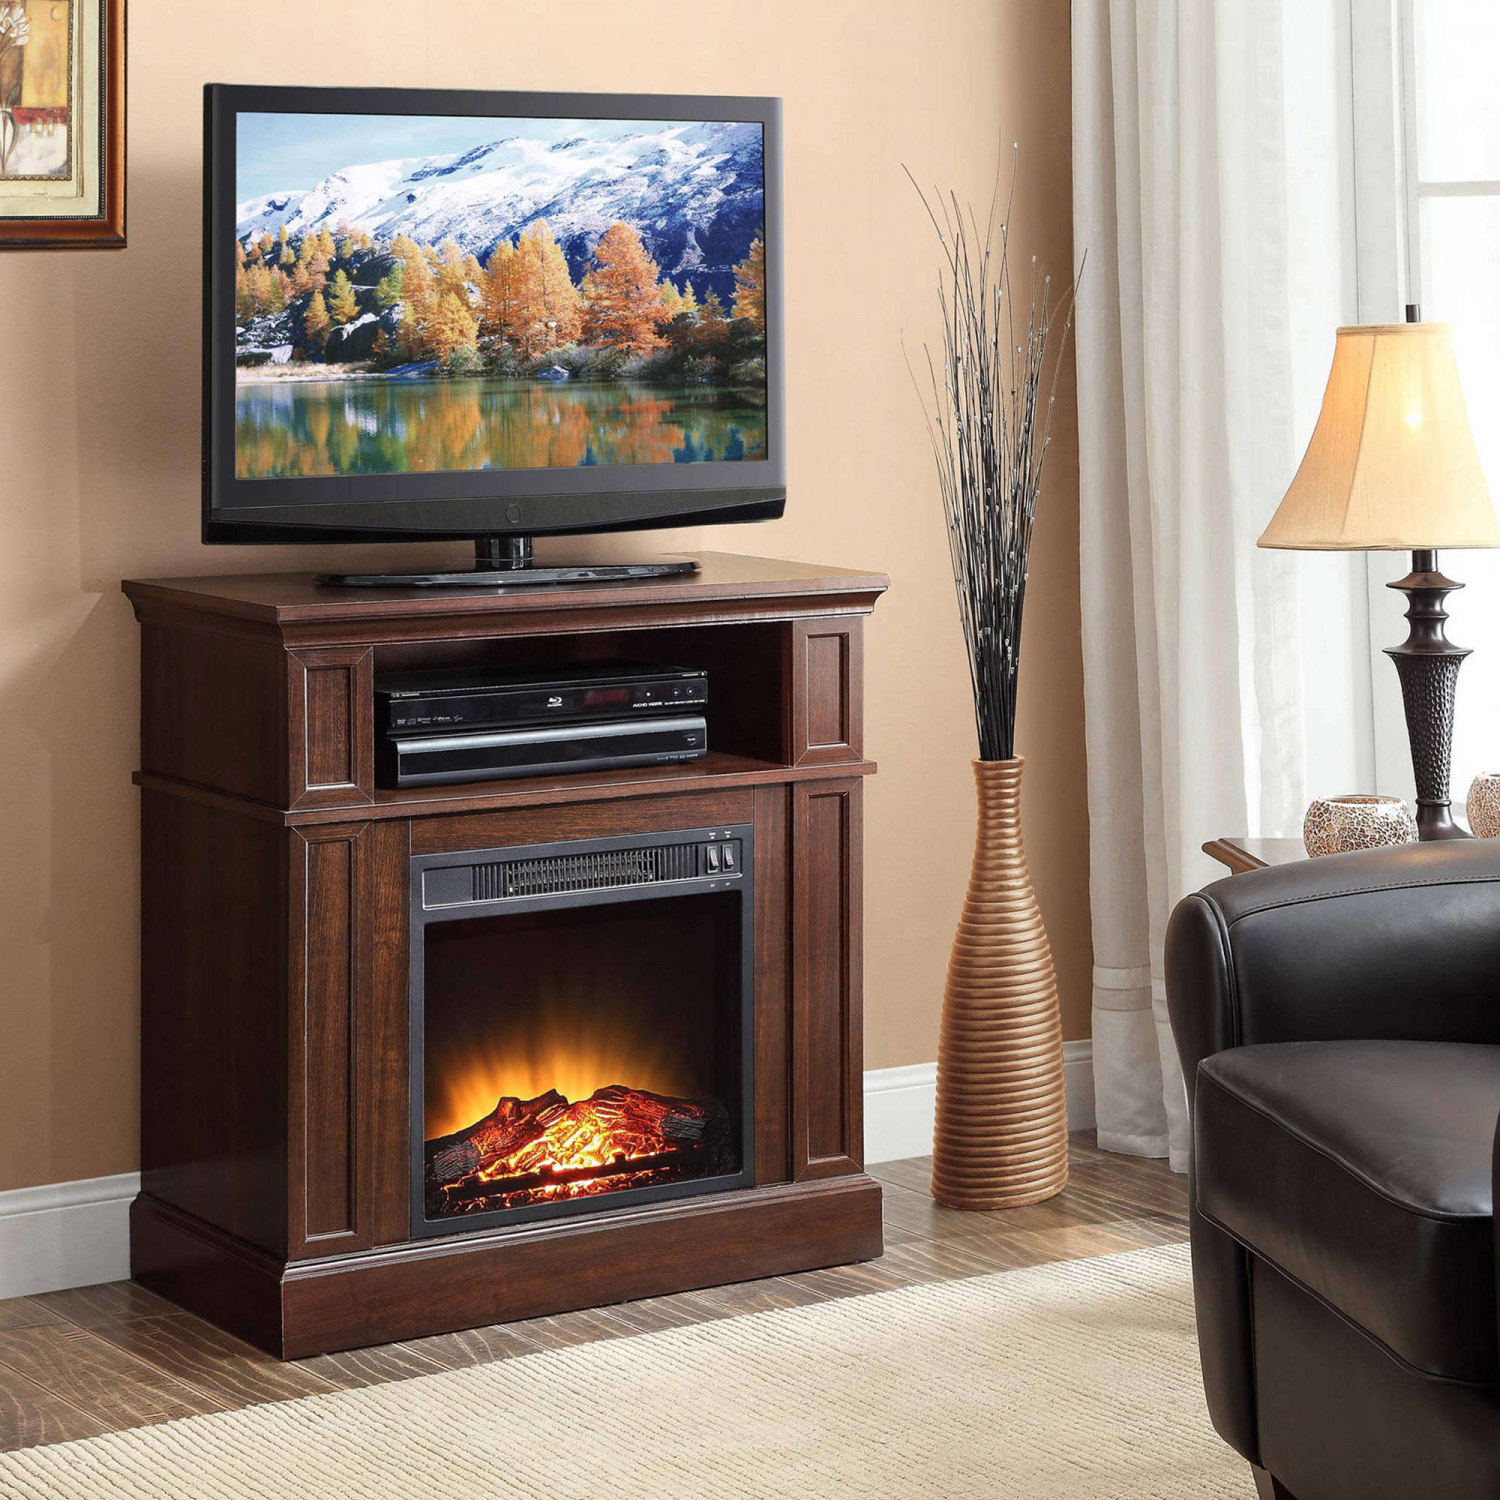 Tv Stand With Electric Fireplace 42 Inch Tvs Media Console Within Slim Tv Stands (View 7 of 15)